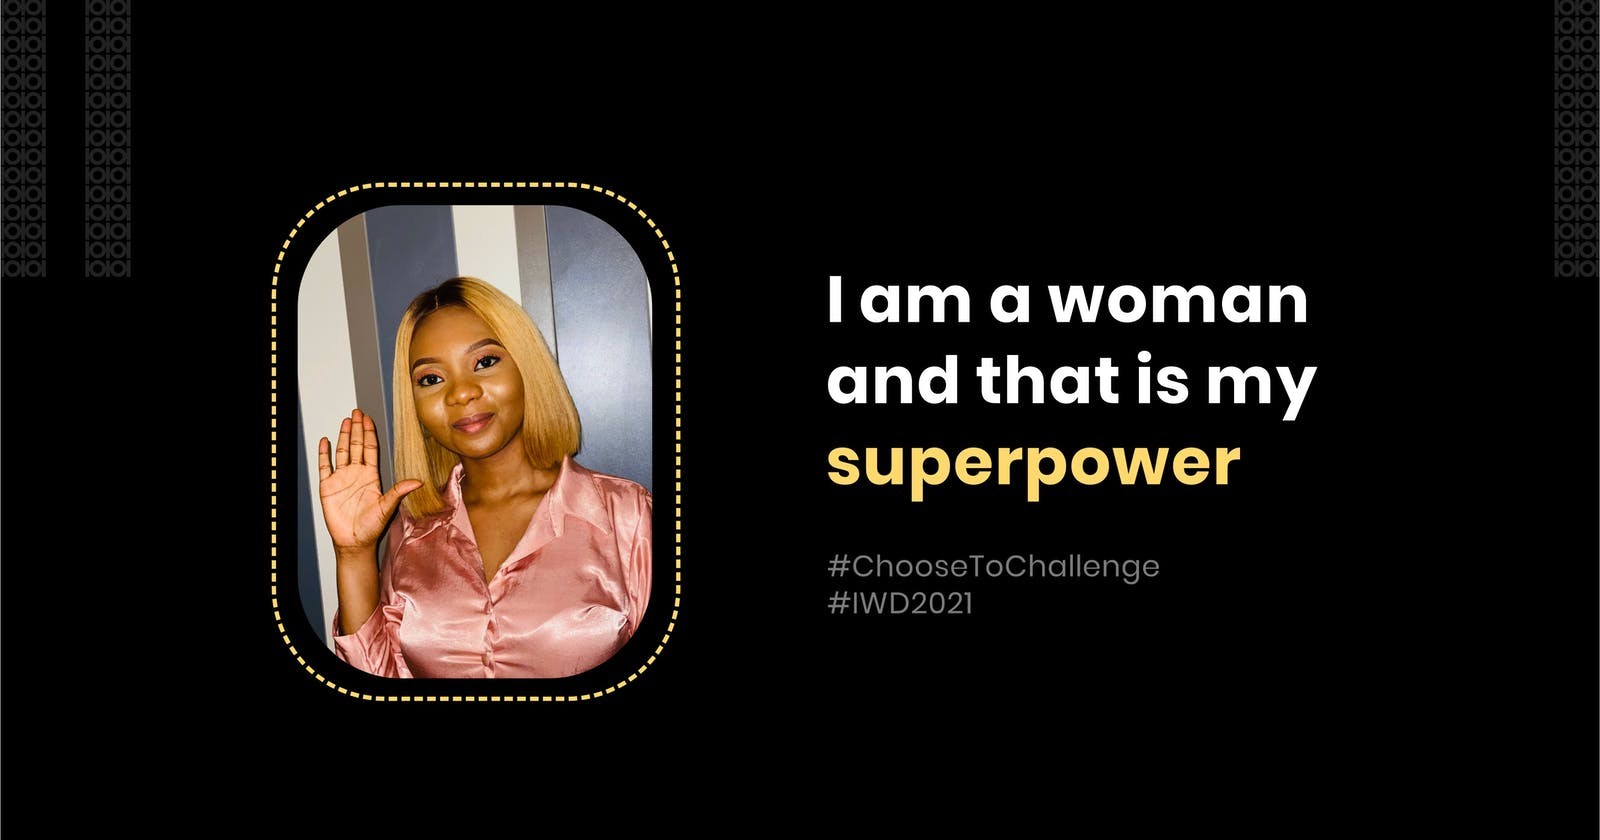 I am a woman, and that is my superpower